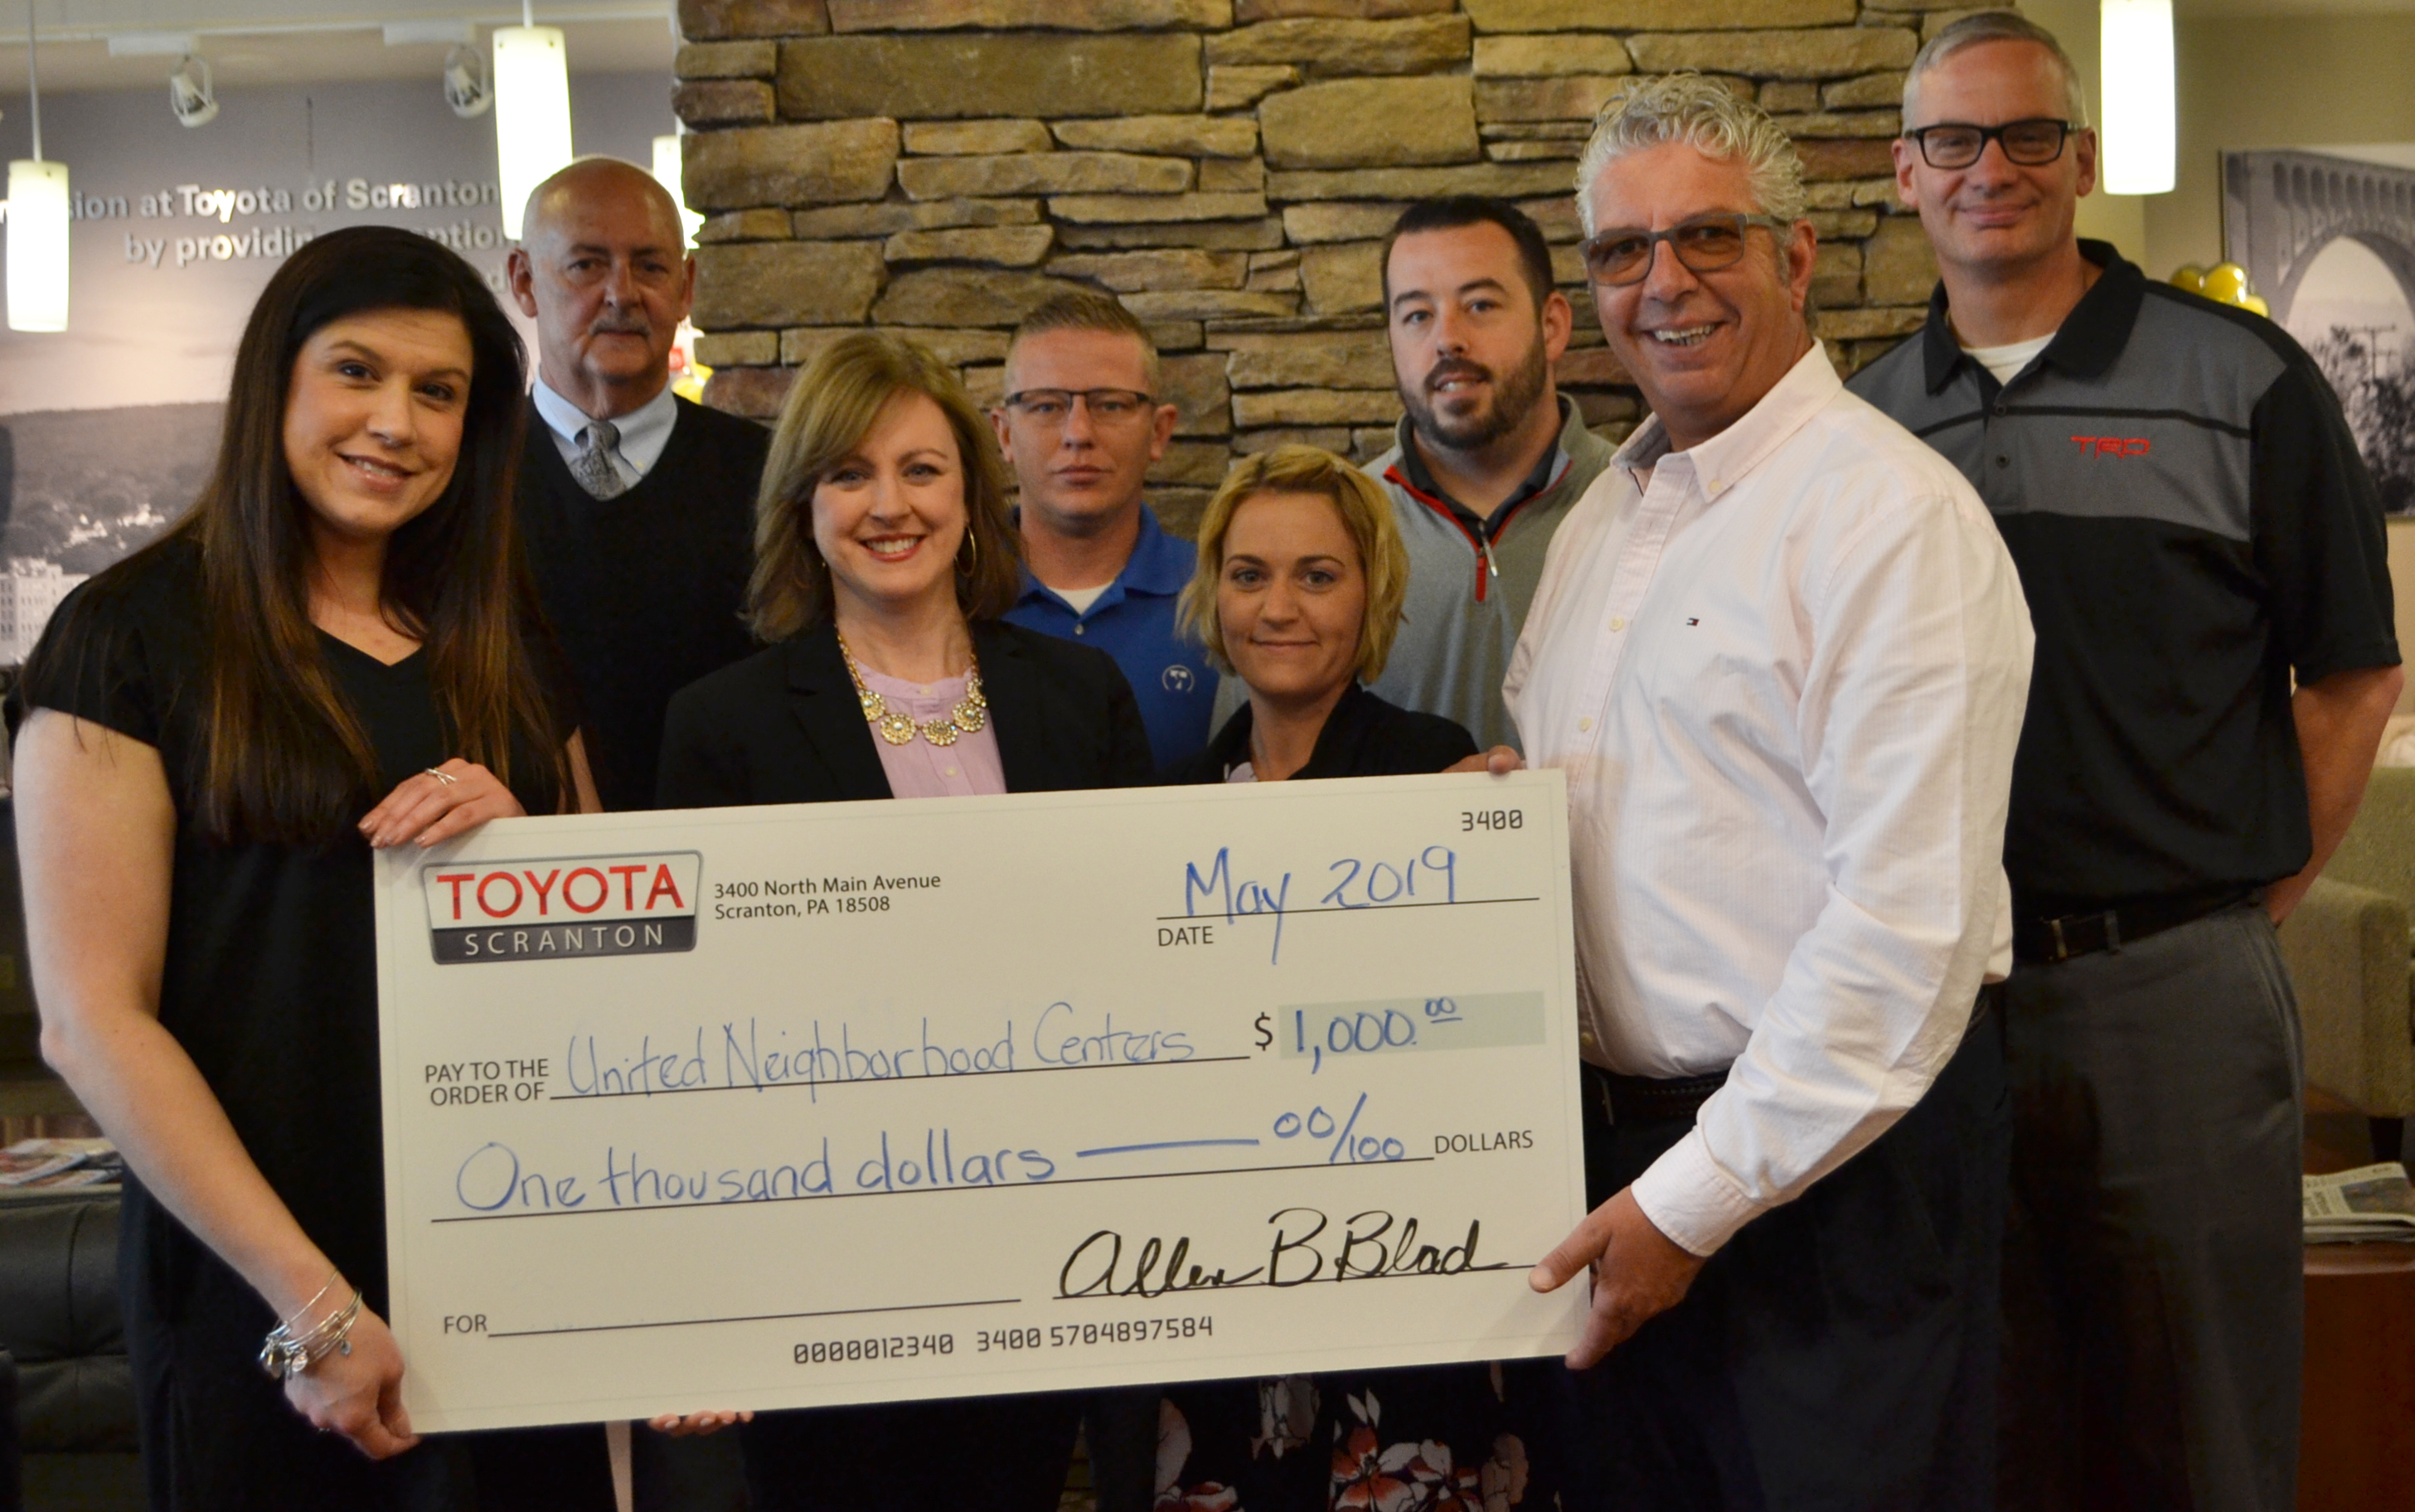 UNC accepts sponsorship for Farm to Form from Toyota of Scranton